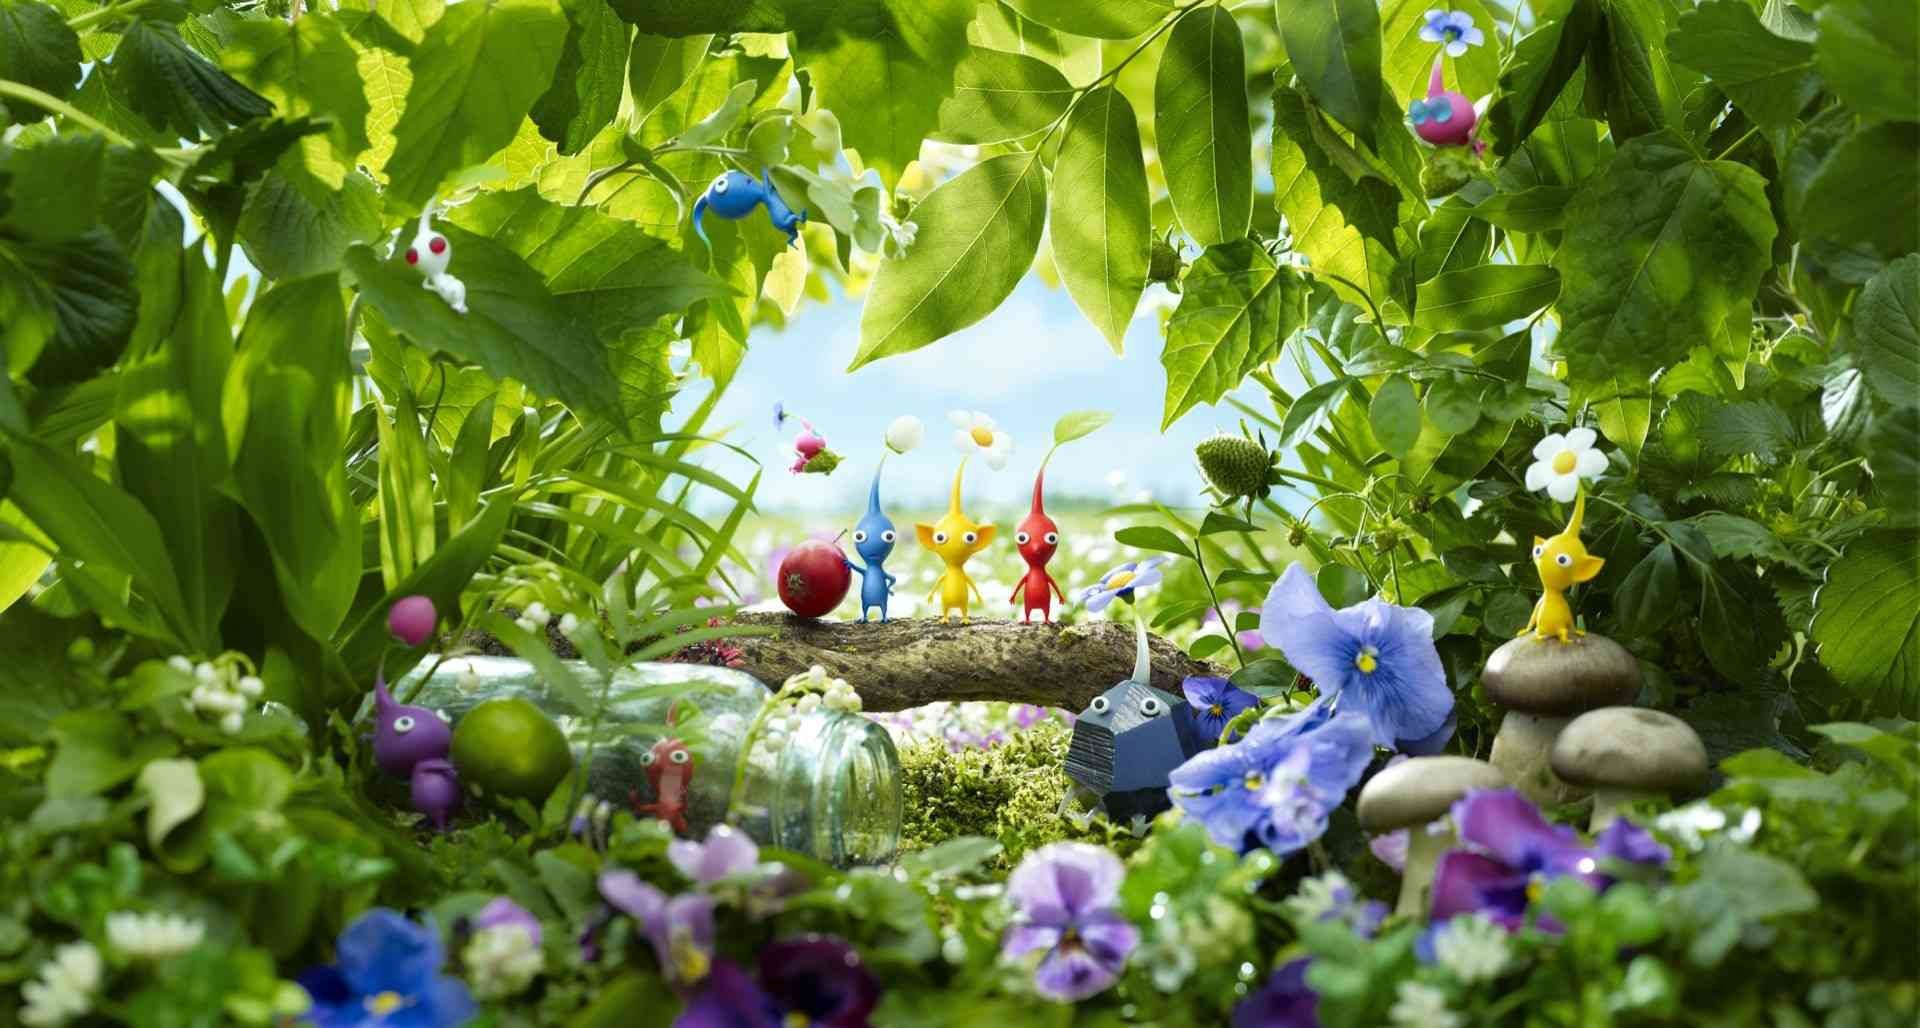 Pikmin 3 Wii U Review Those Cute Little Creatures Are Back